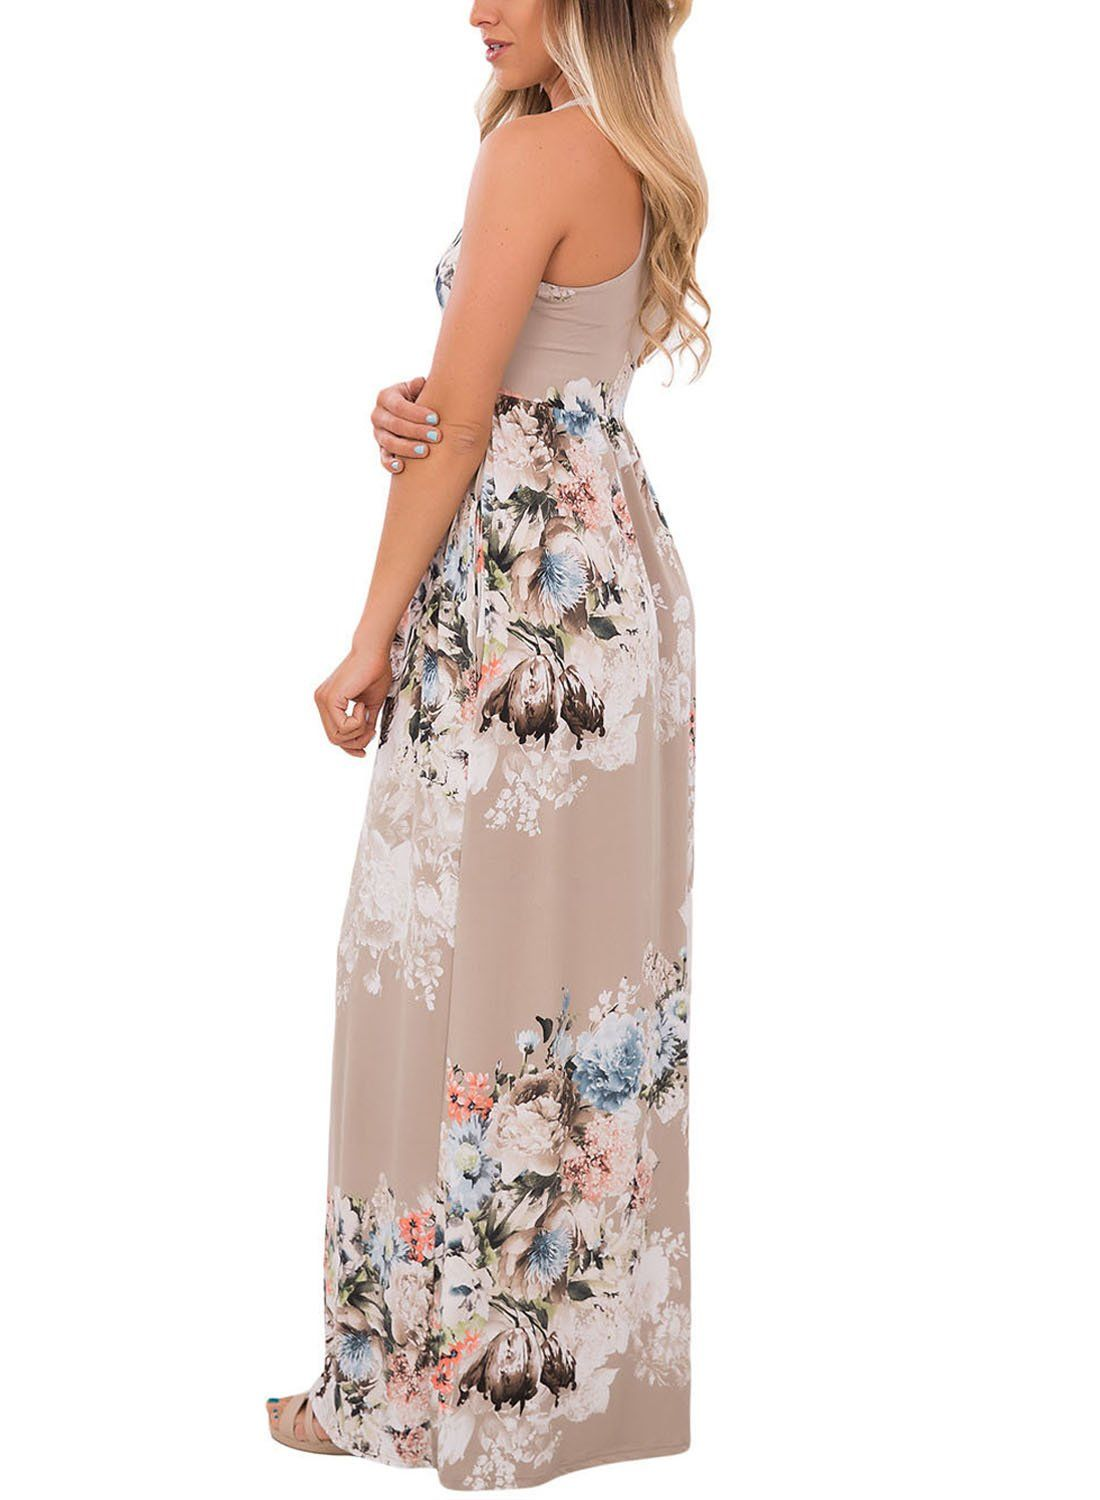 Maternity outfits baggy maternity dresses jugandpo womens floral